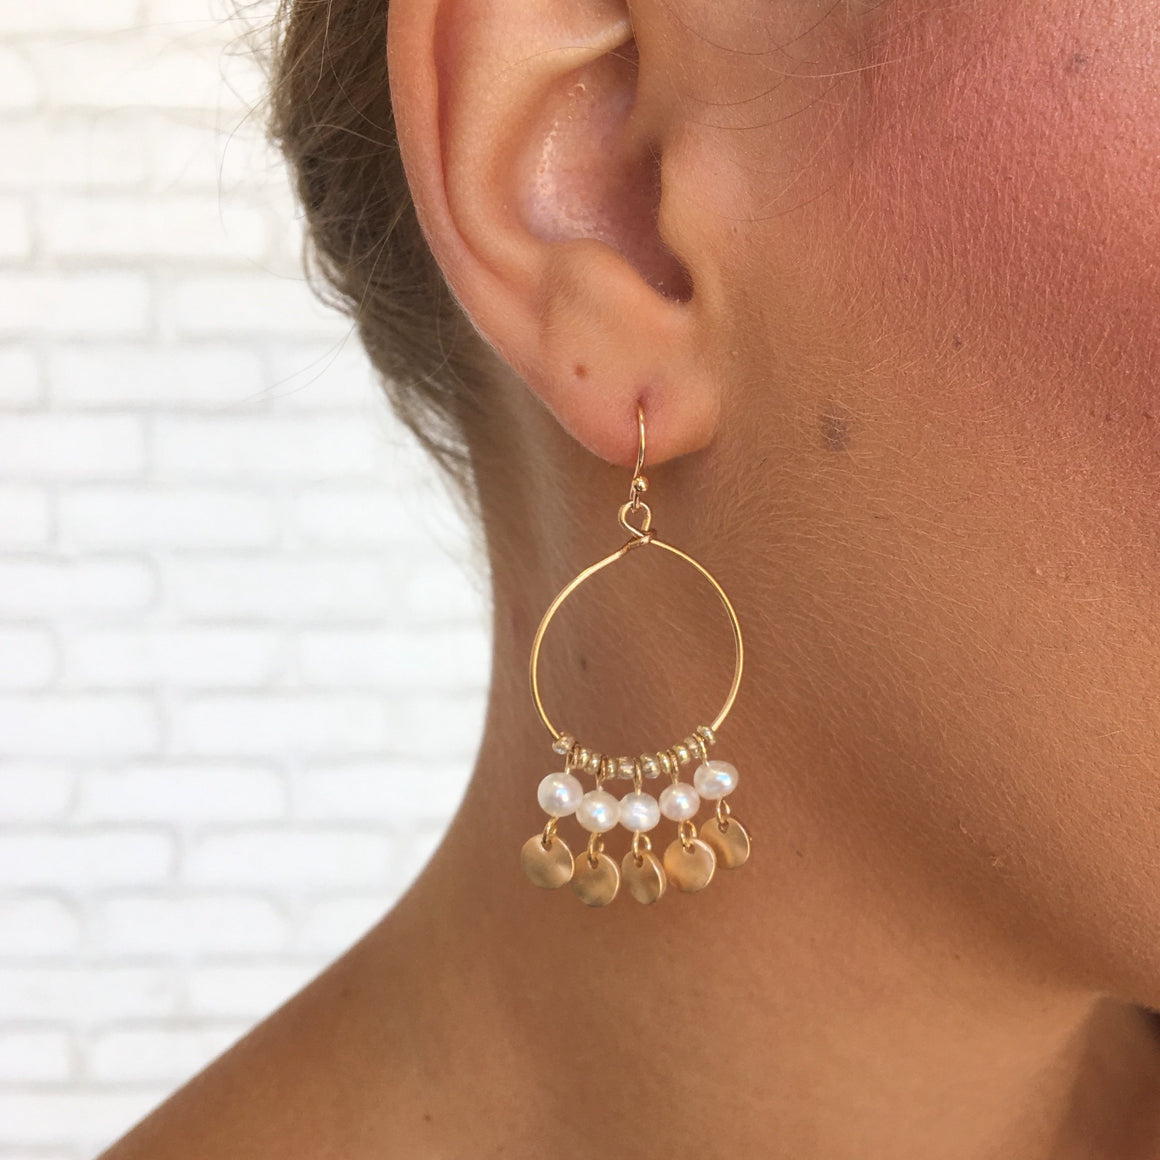 Hanging By A Pearl Hoop Earrings In Gold - Dainty Hooligan